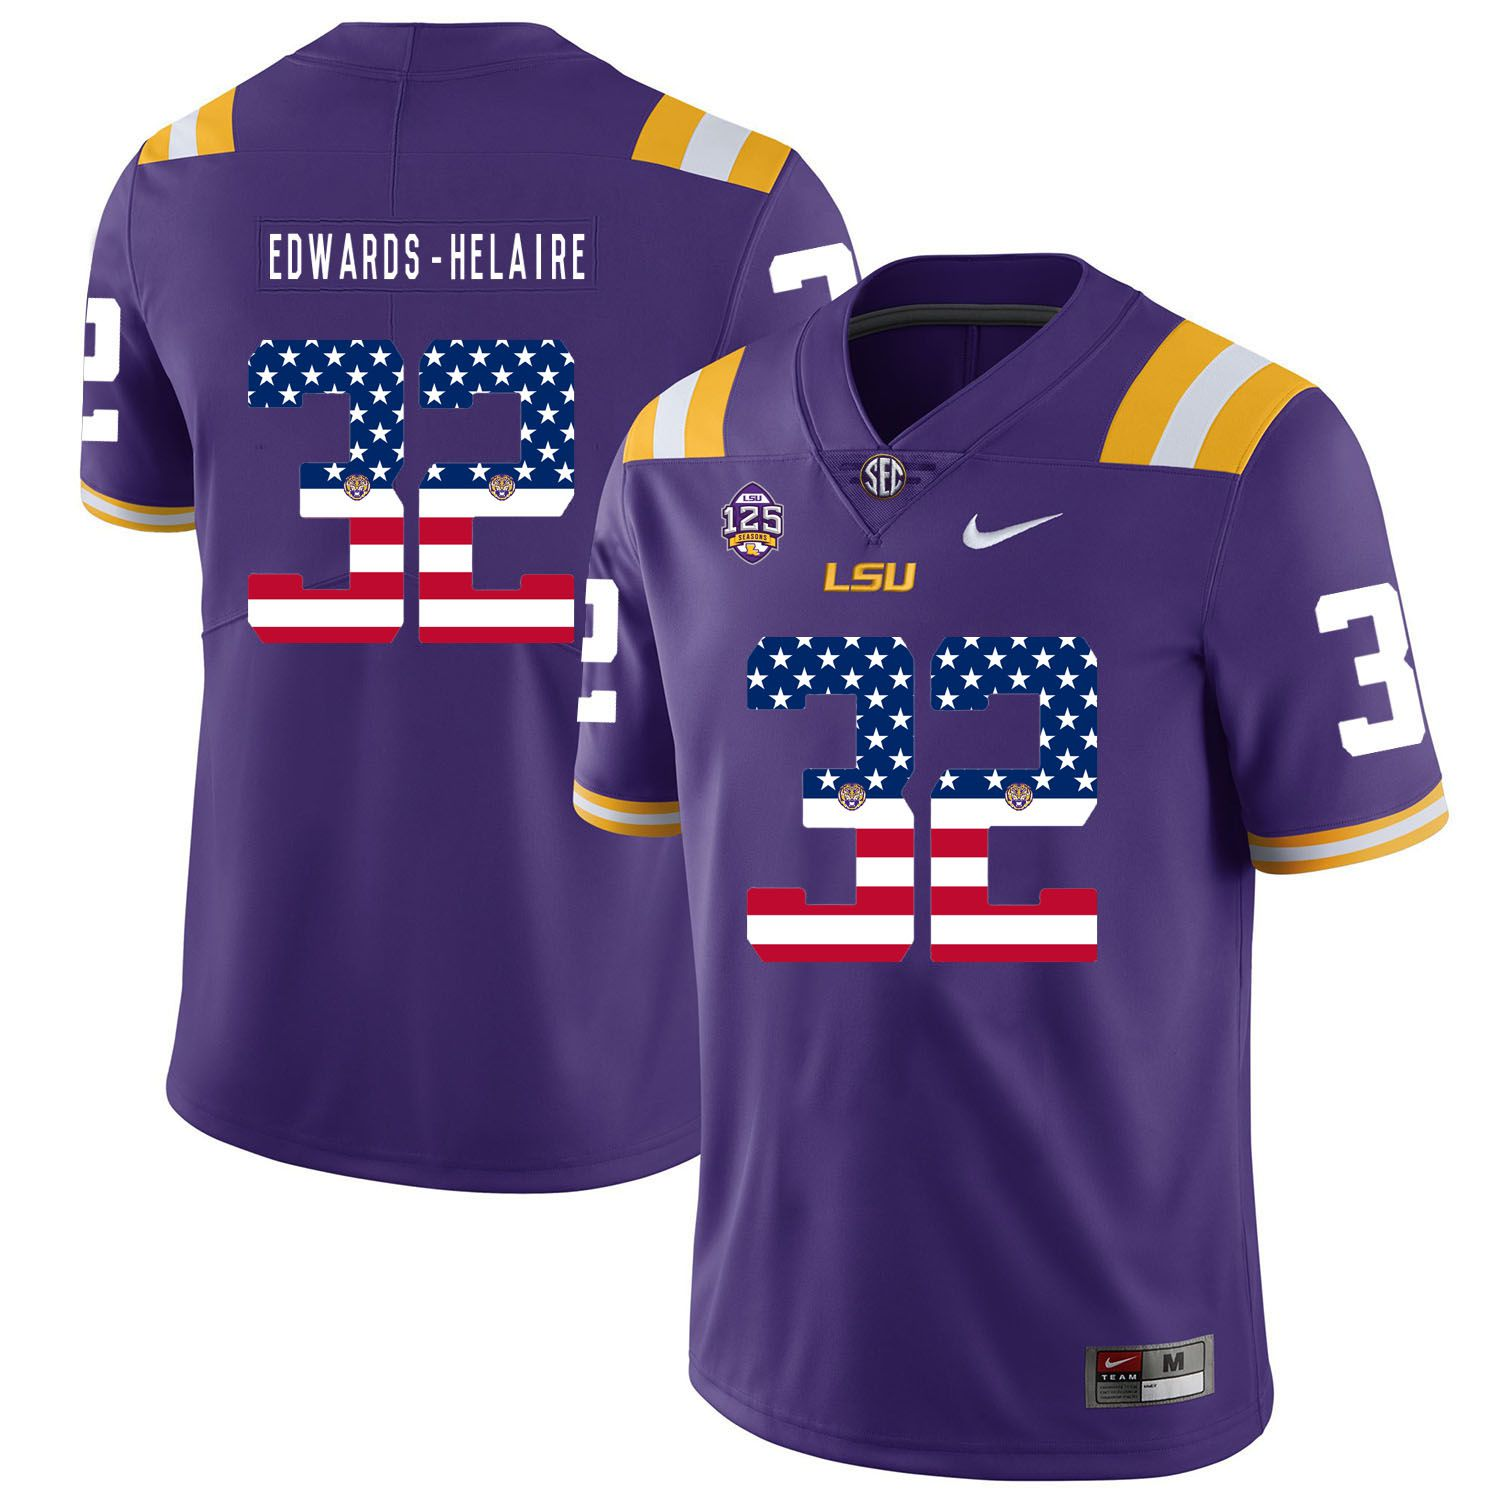 Men LSU Tigers 32 Edwards-helaire Purple Flag Customized NCAA Jerseys